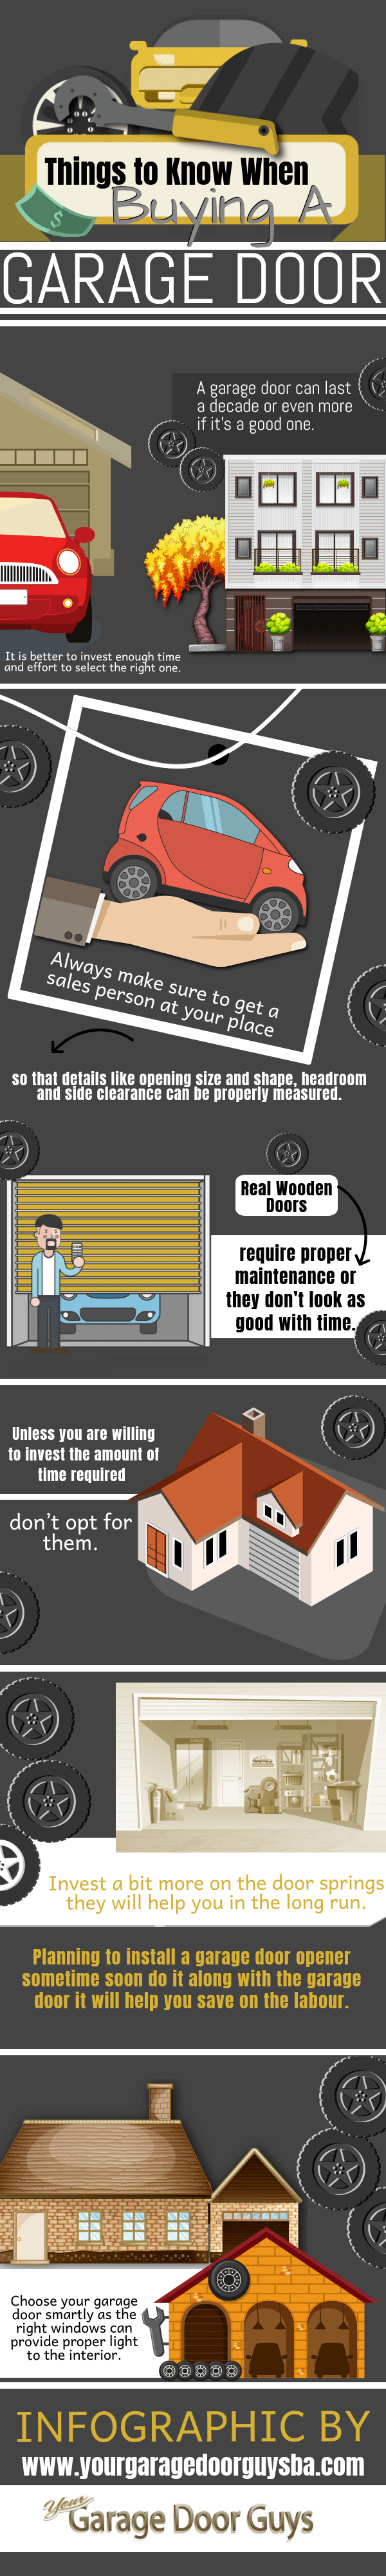 Things To Know When Buying A Garage Door